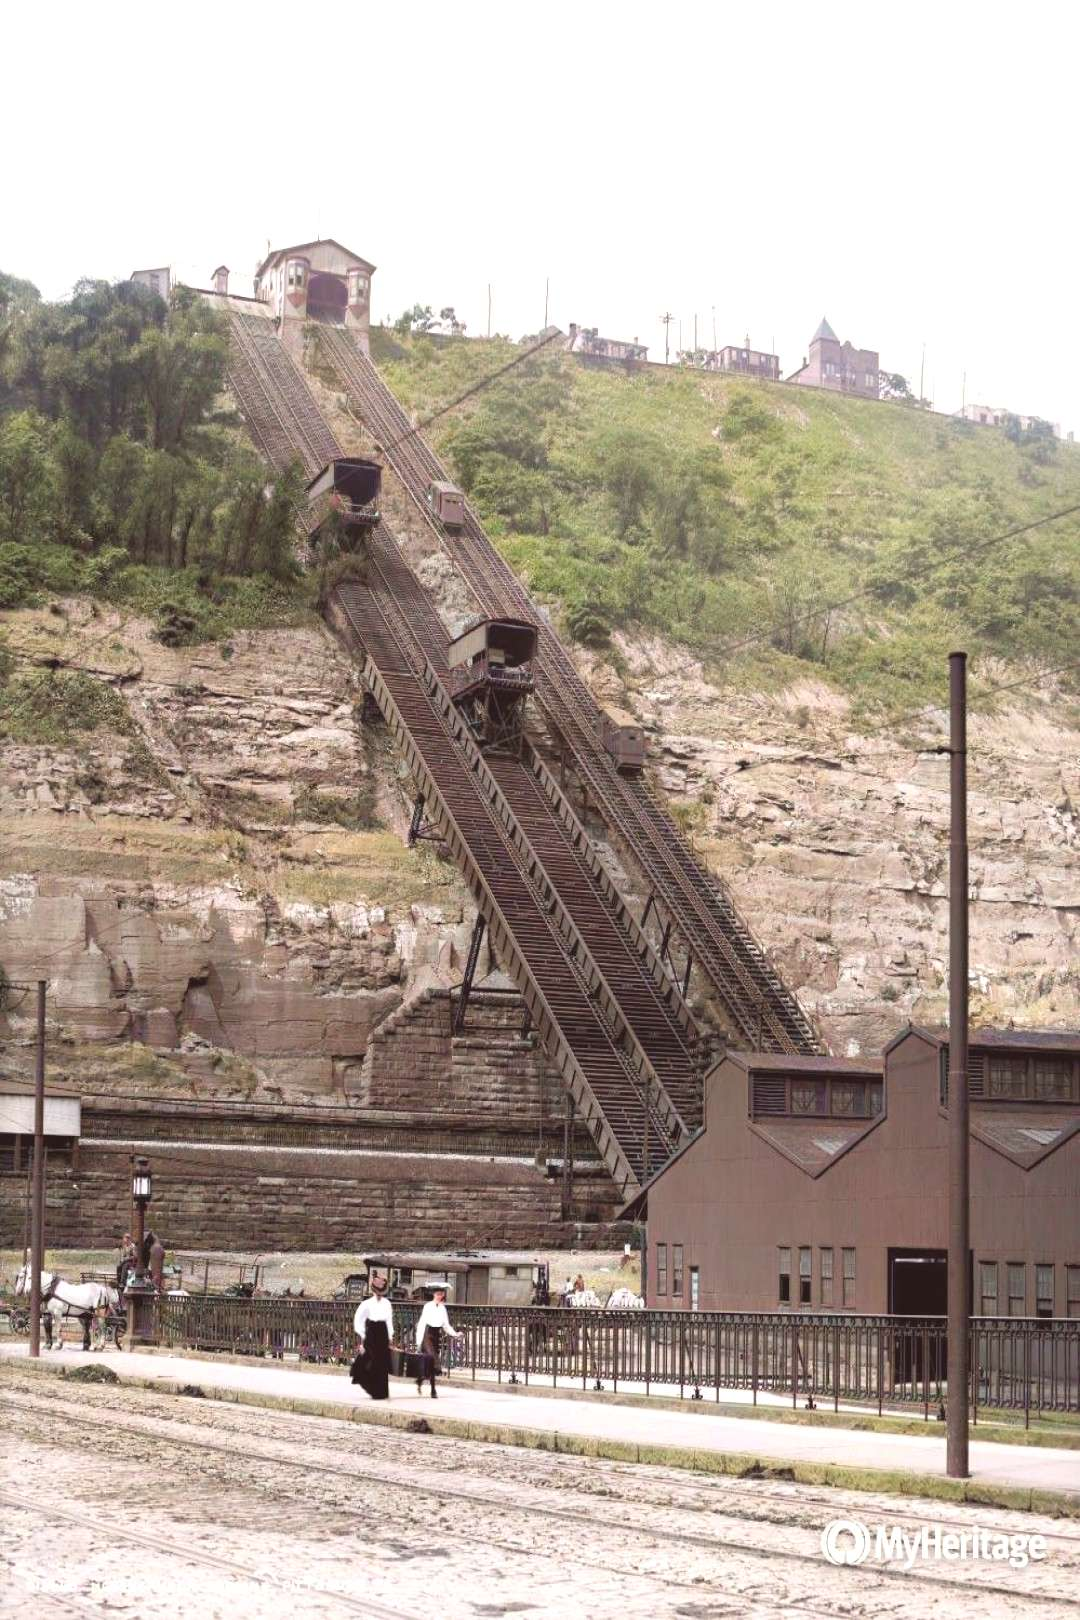 Odd Pittsburgh on Twitter quot#Pittsburghs Monongahela Incline in 1905 (Colorized with @MyHeritage